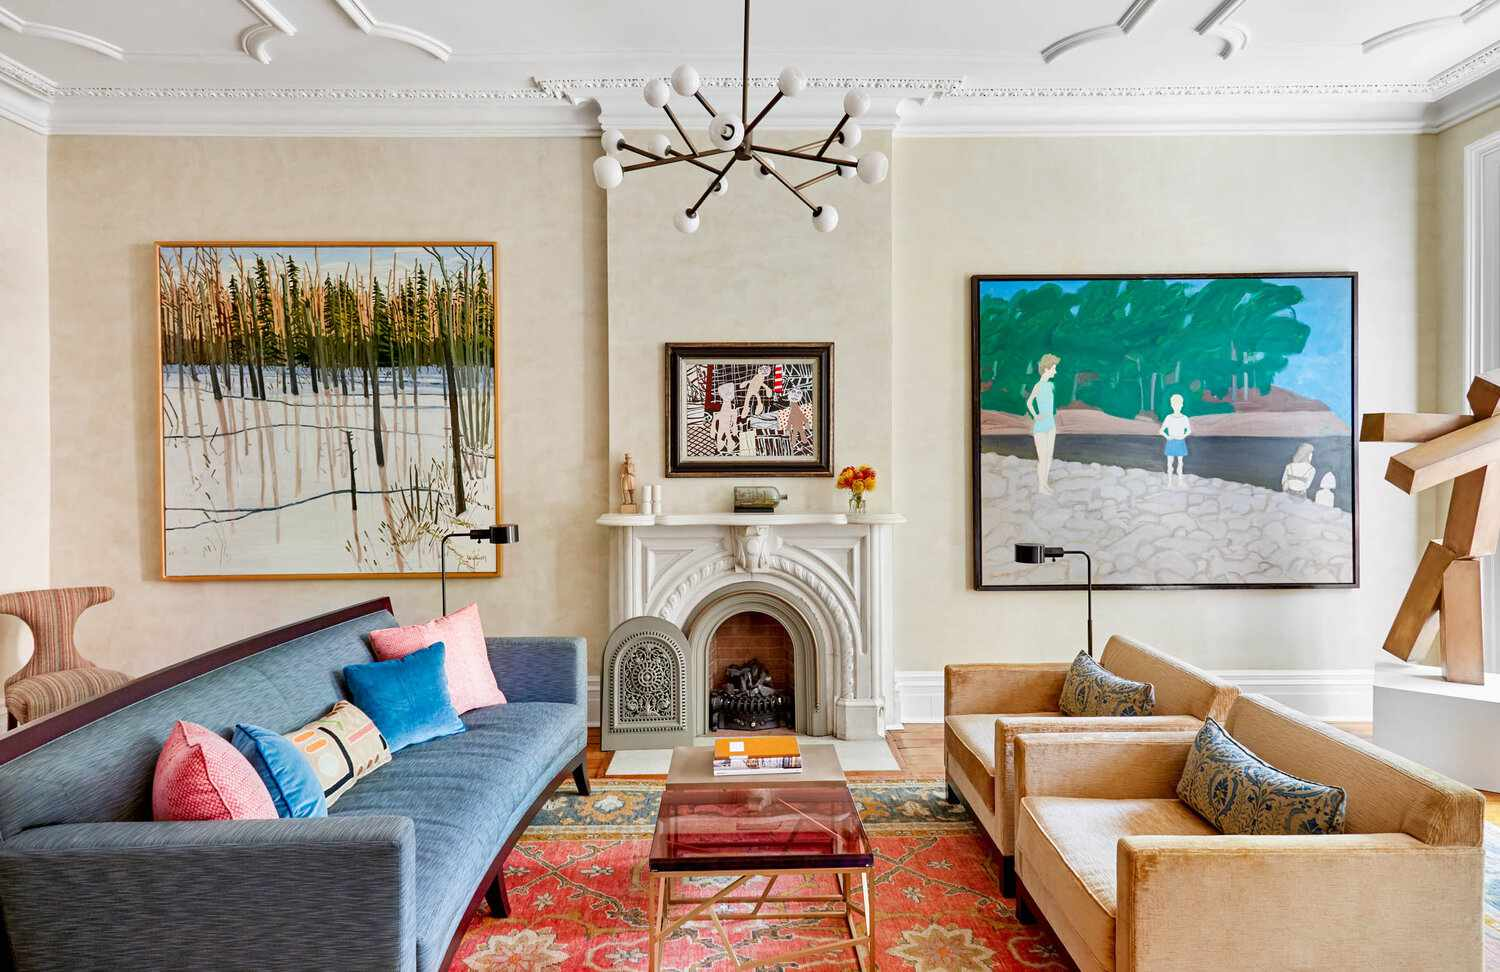 A living room with contemporary lighting, bold art, and a red printed rug